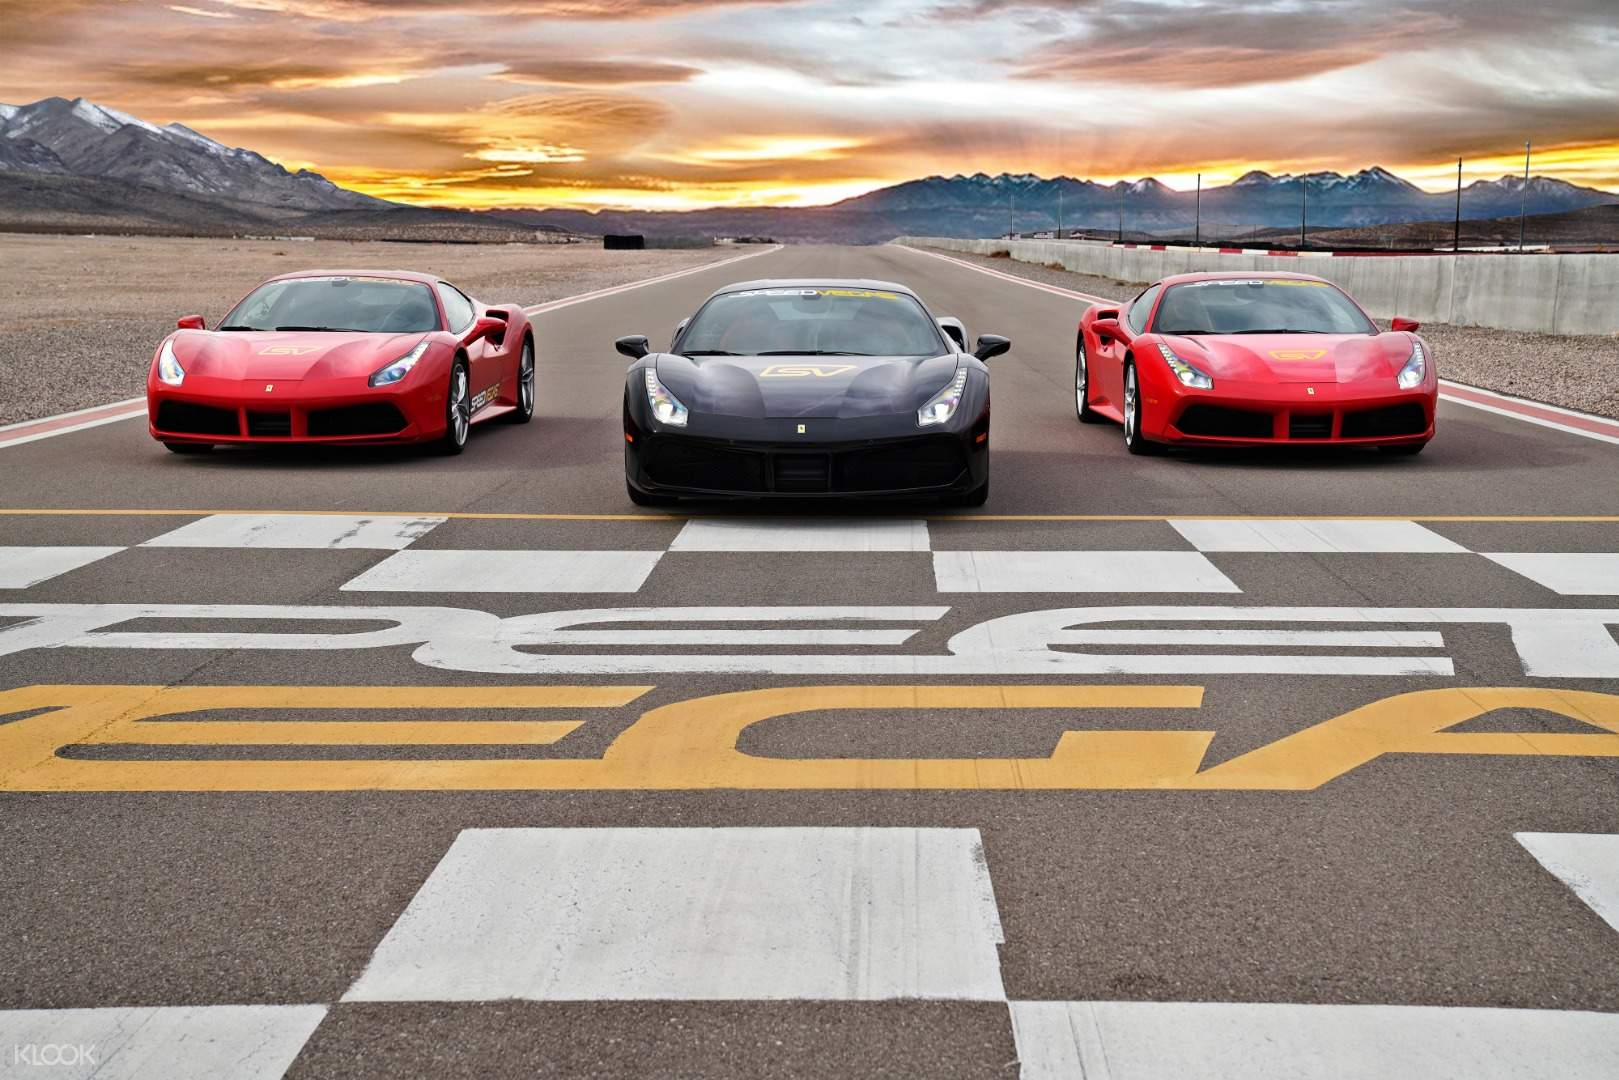 Exotic Supercar Driving On A Real Racetrack Experience In Las Vegas